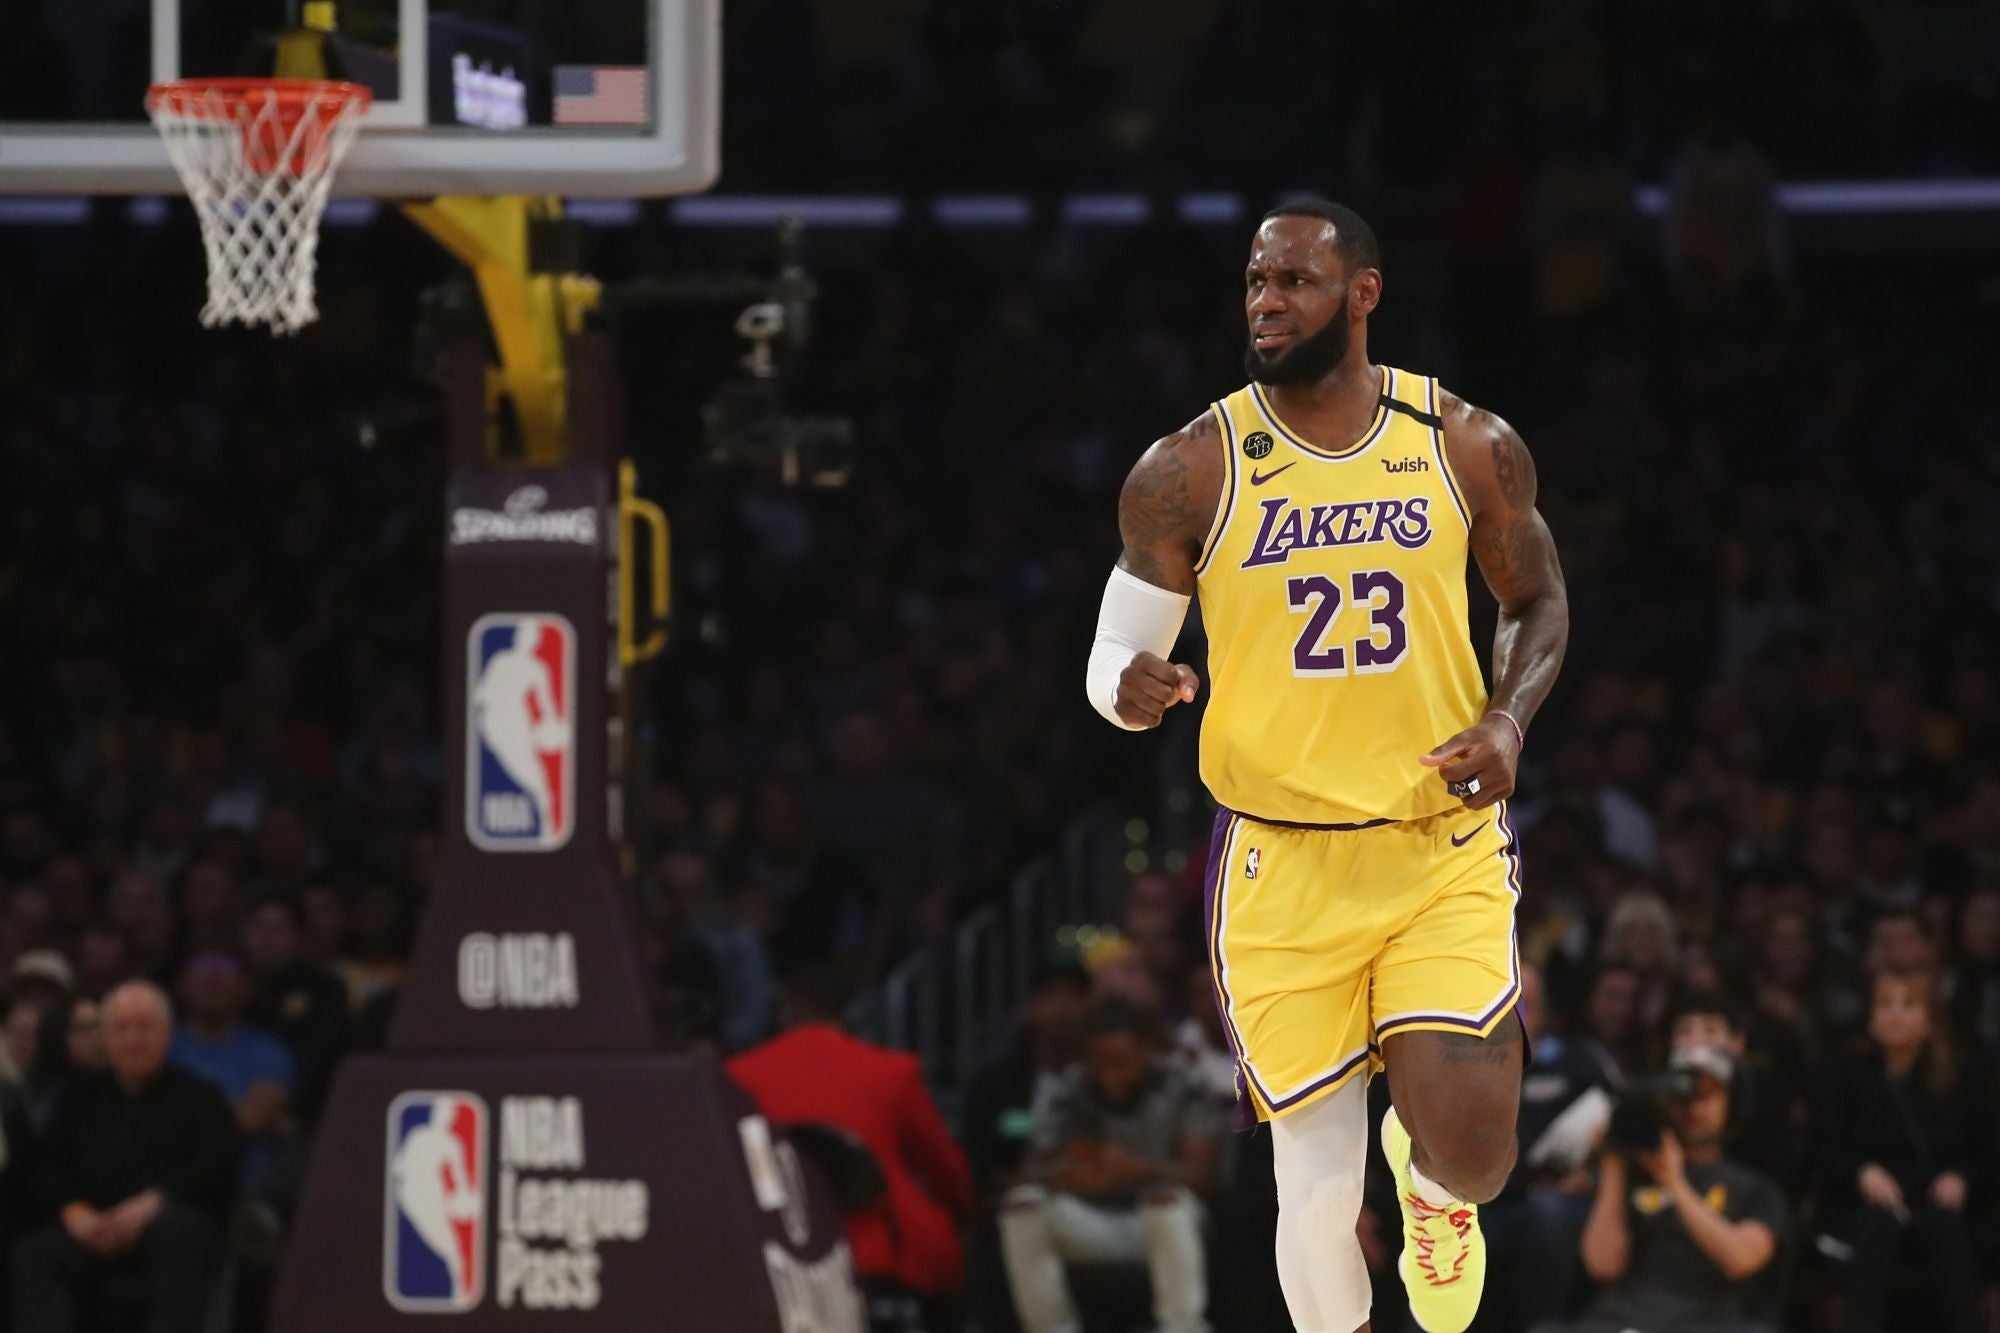 L.A. Lakers Latest Private Company to Return PPP Funds